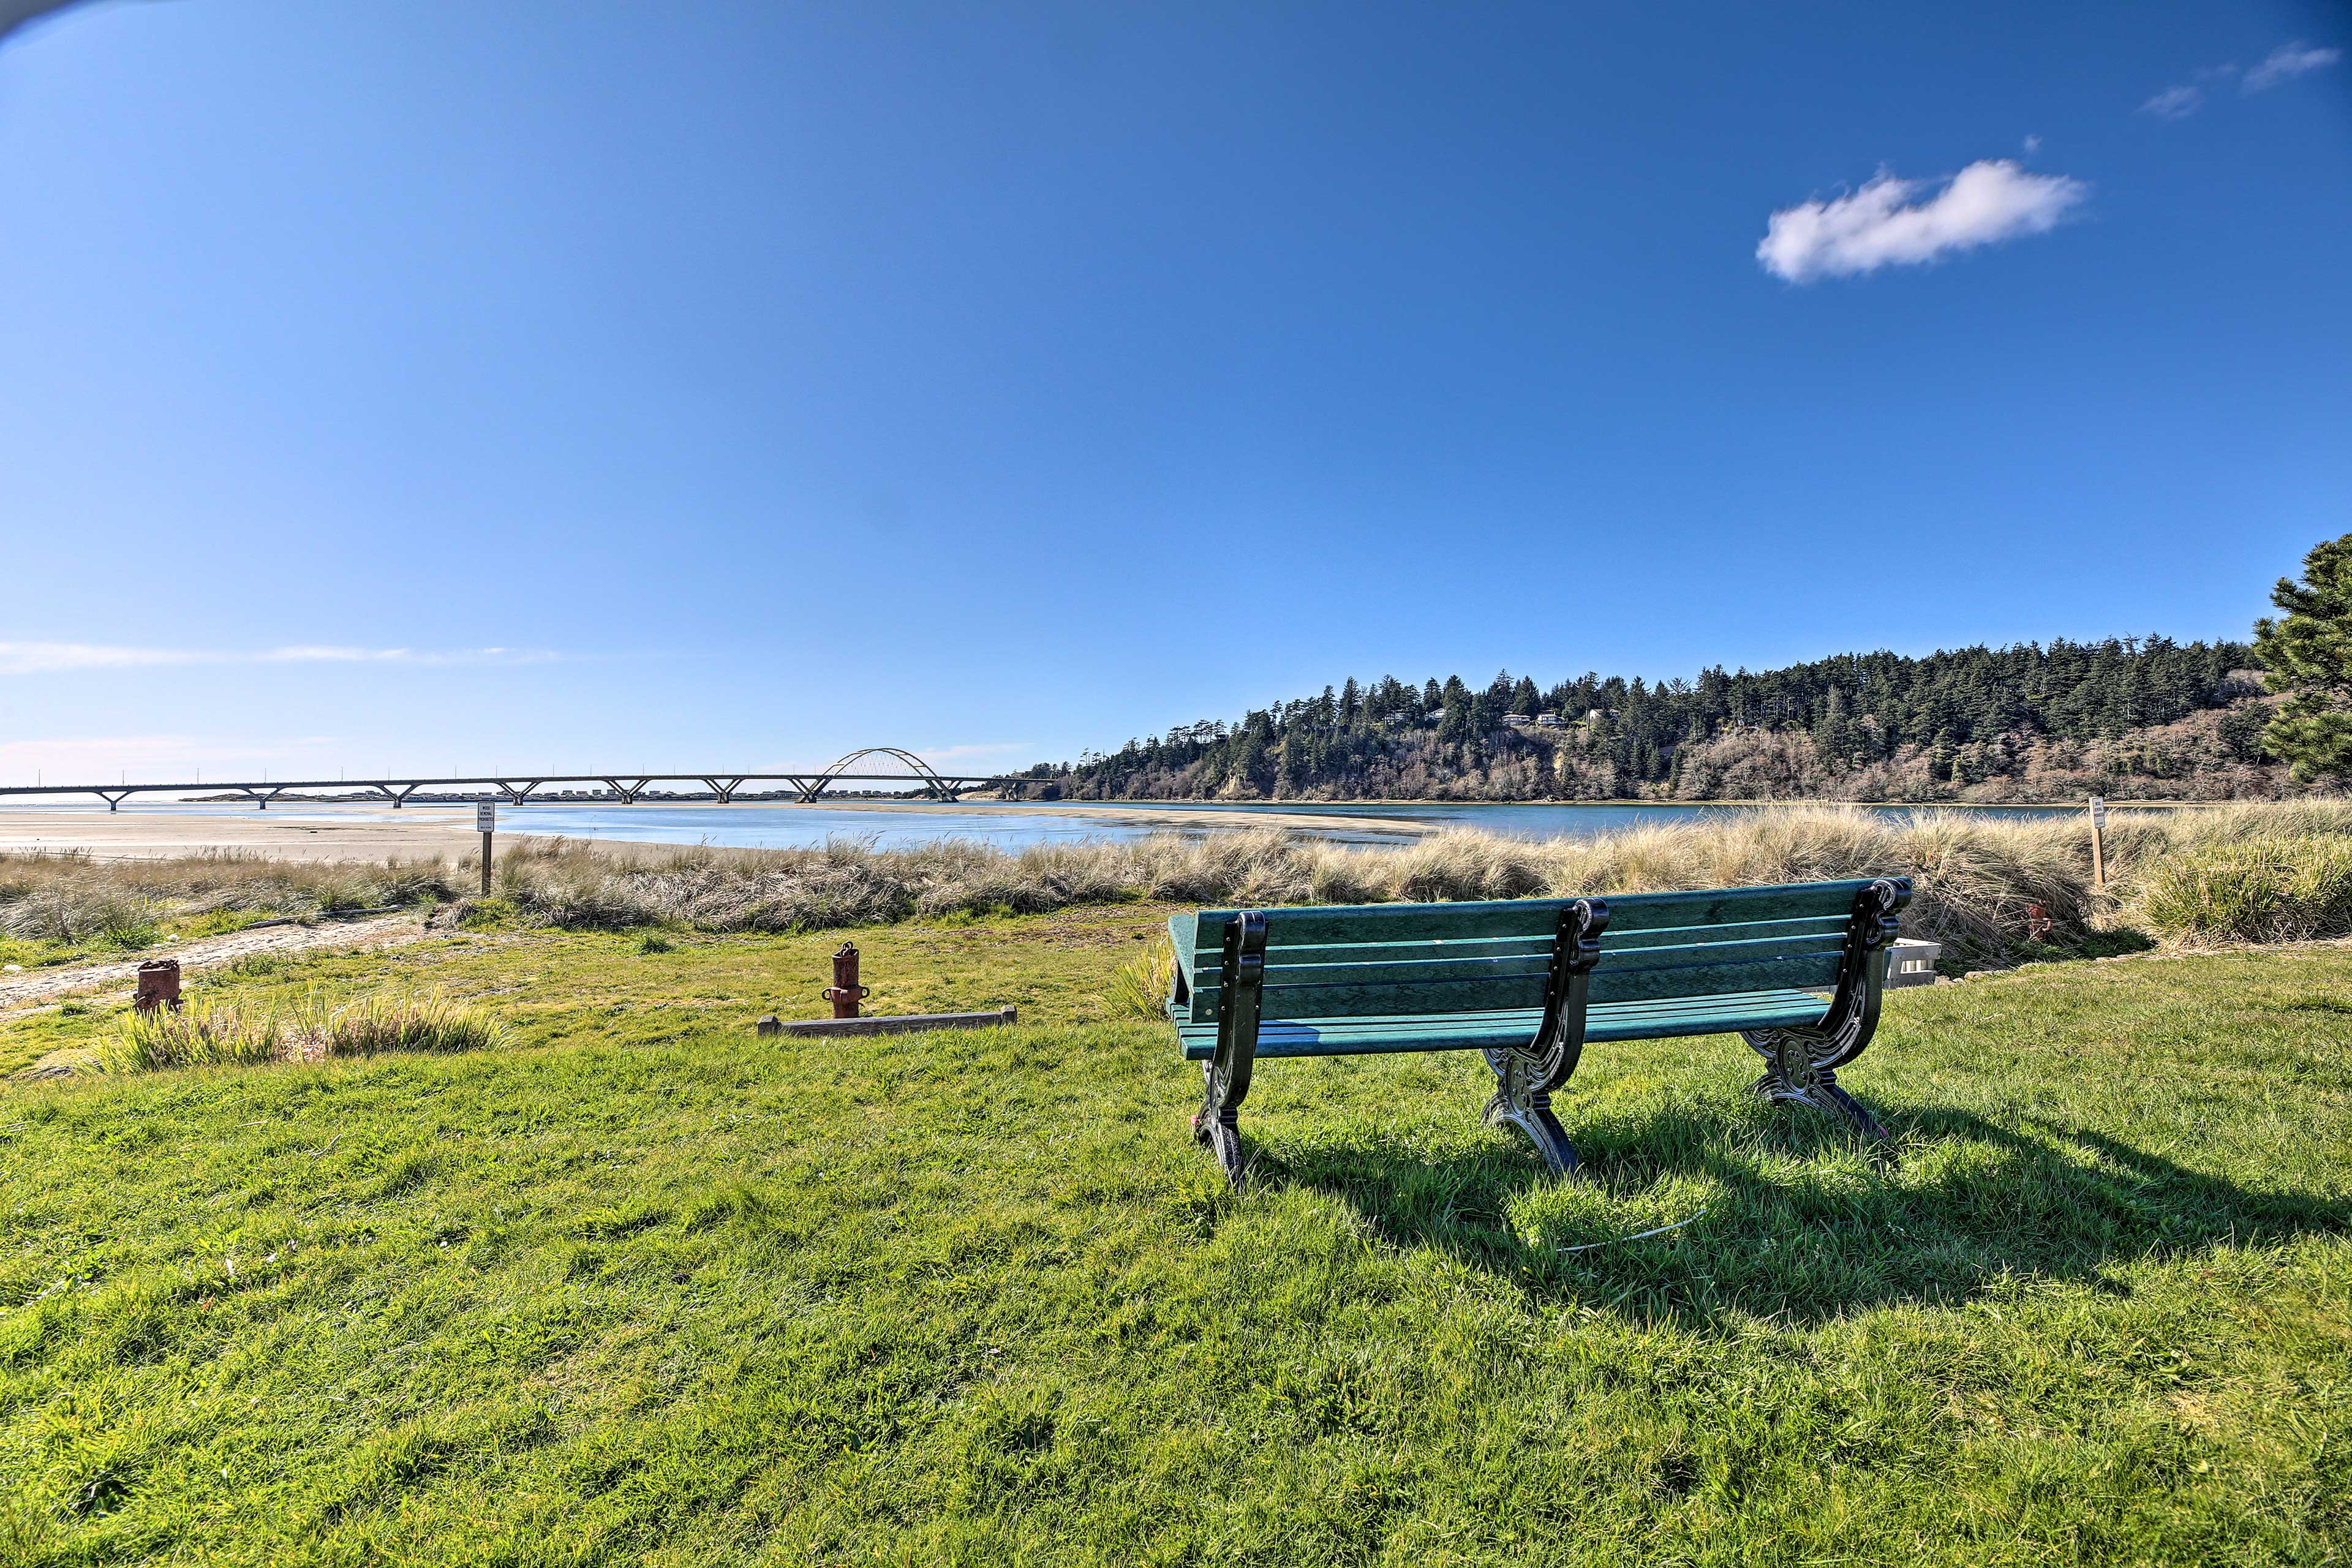 Sit back, relax, and be inspired by the scenic bridge views.